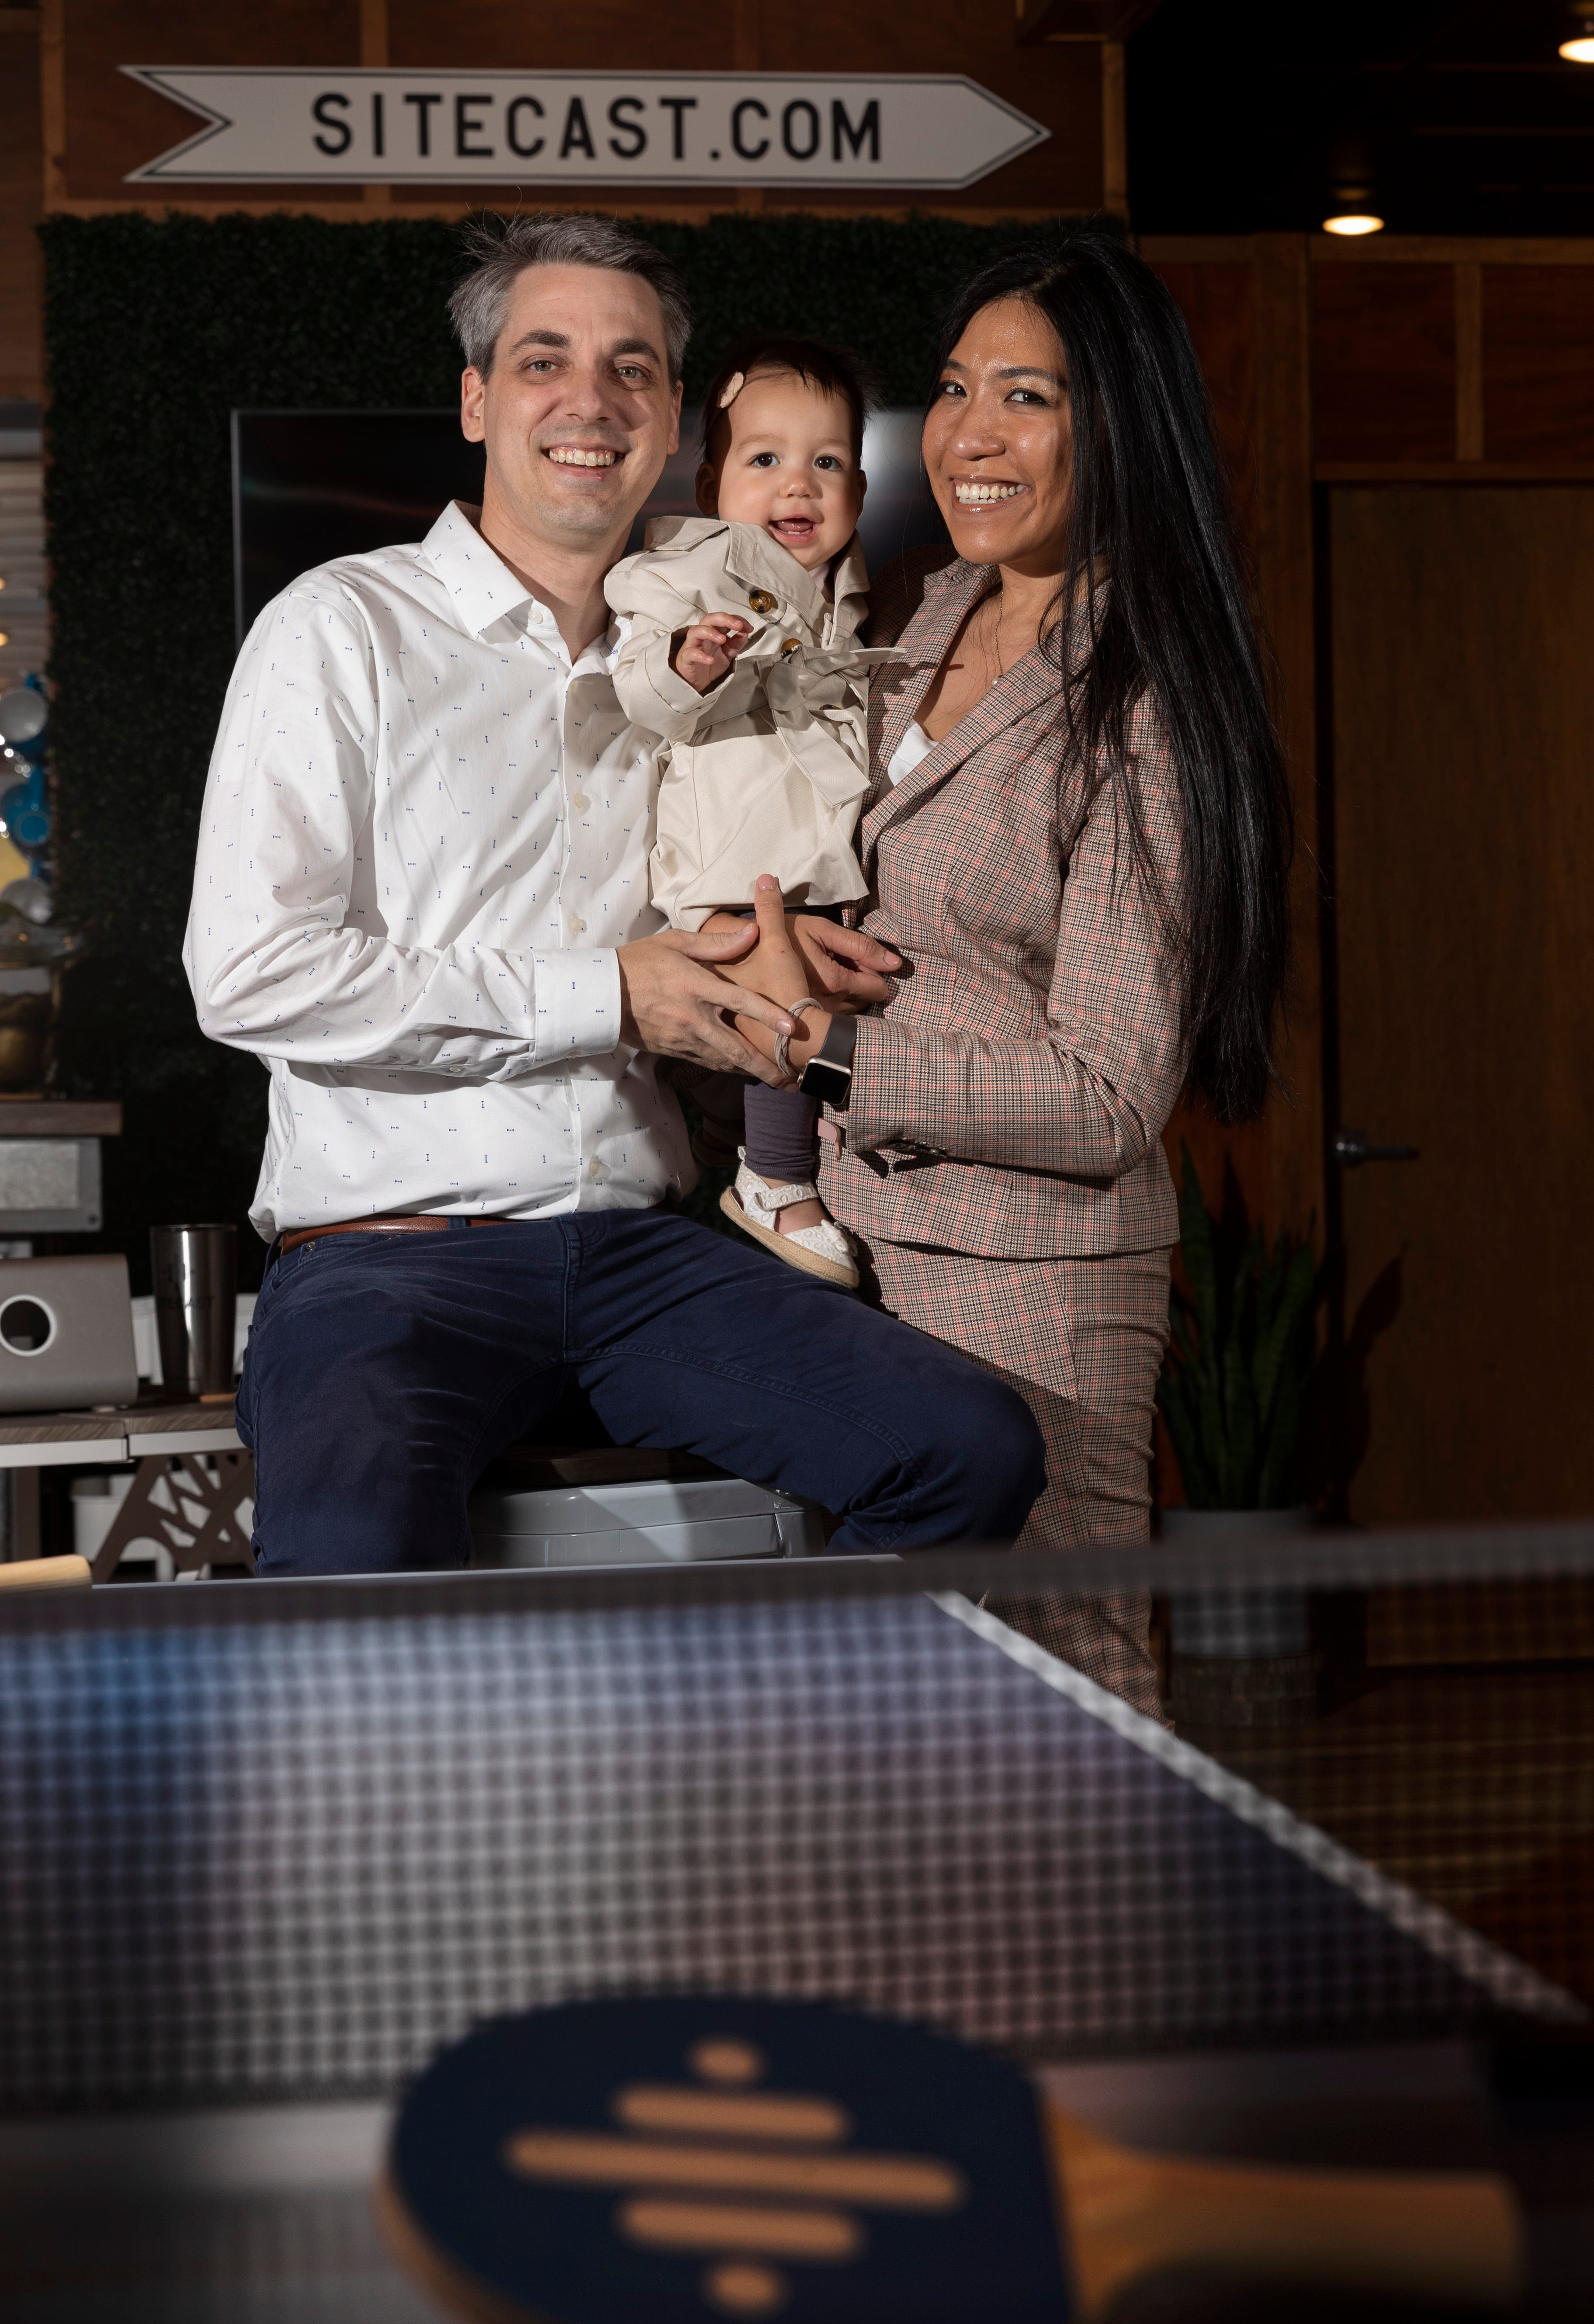 Brad and Rubie Gauthier are shown with their 10-month-old daughter in Minocqua.  They are the owners of Sitecast, a national website design firm. They lived in Portland,  but anxious about coronavirus and social unrest, left the city and moved to the Northwoods.